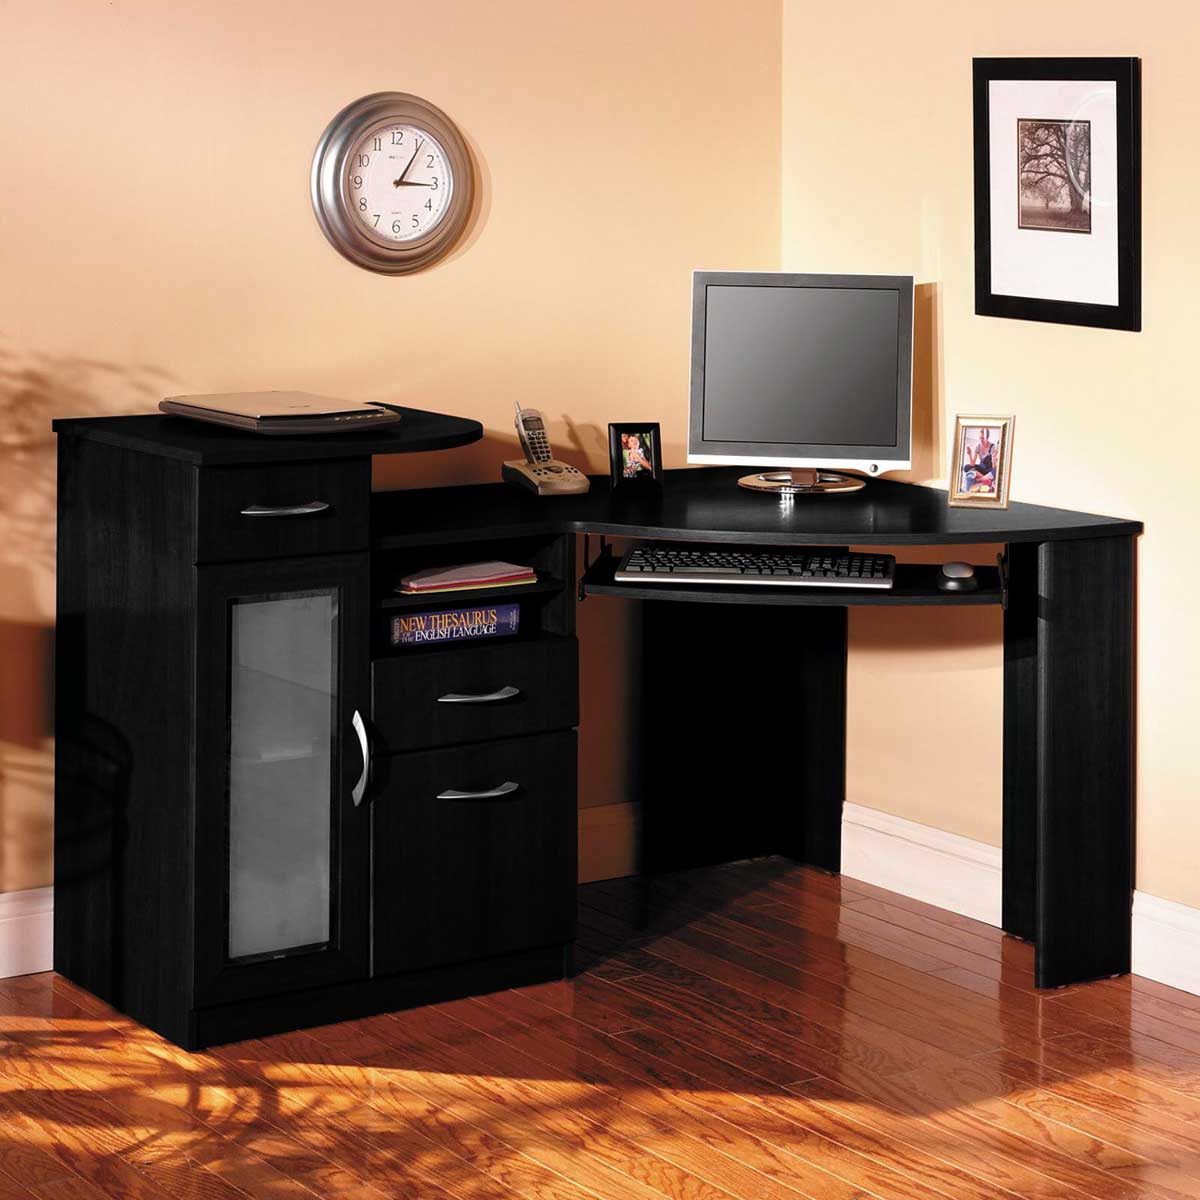 Corner Drawer Brilliant Black Corner Desk With Drawers Image For Hutch And 30